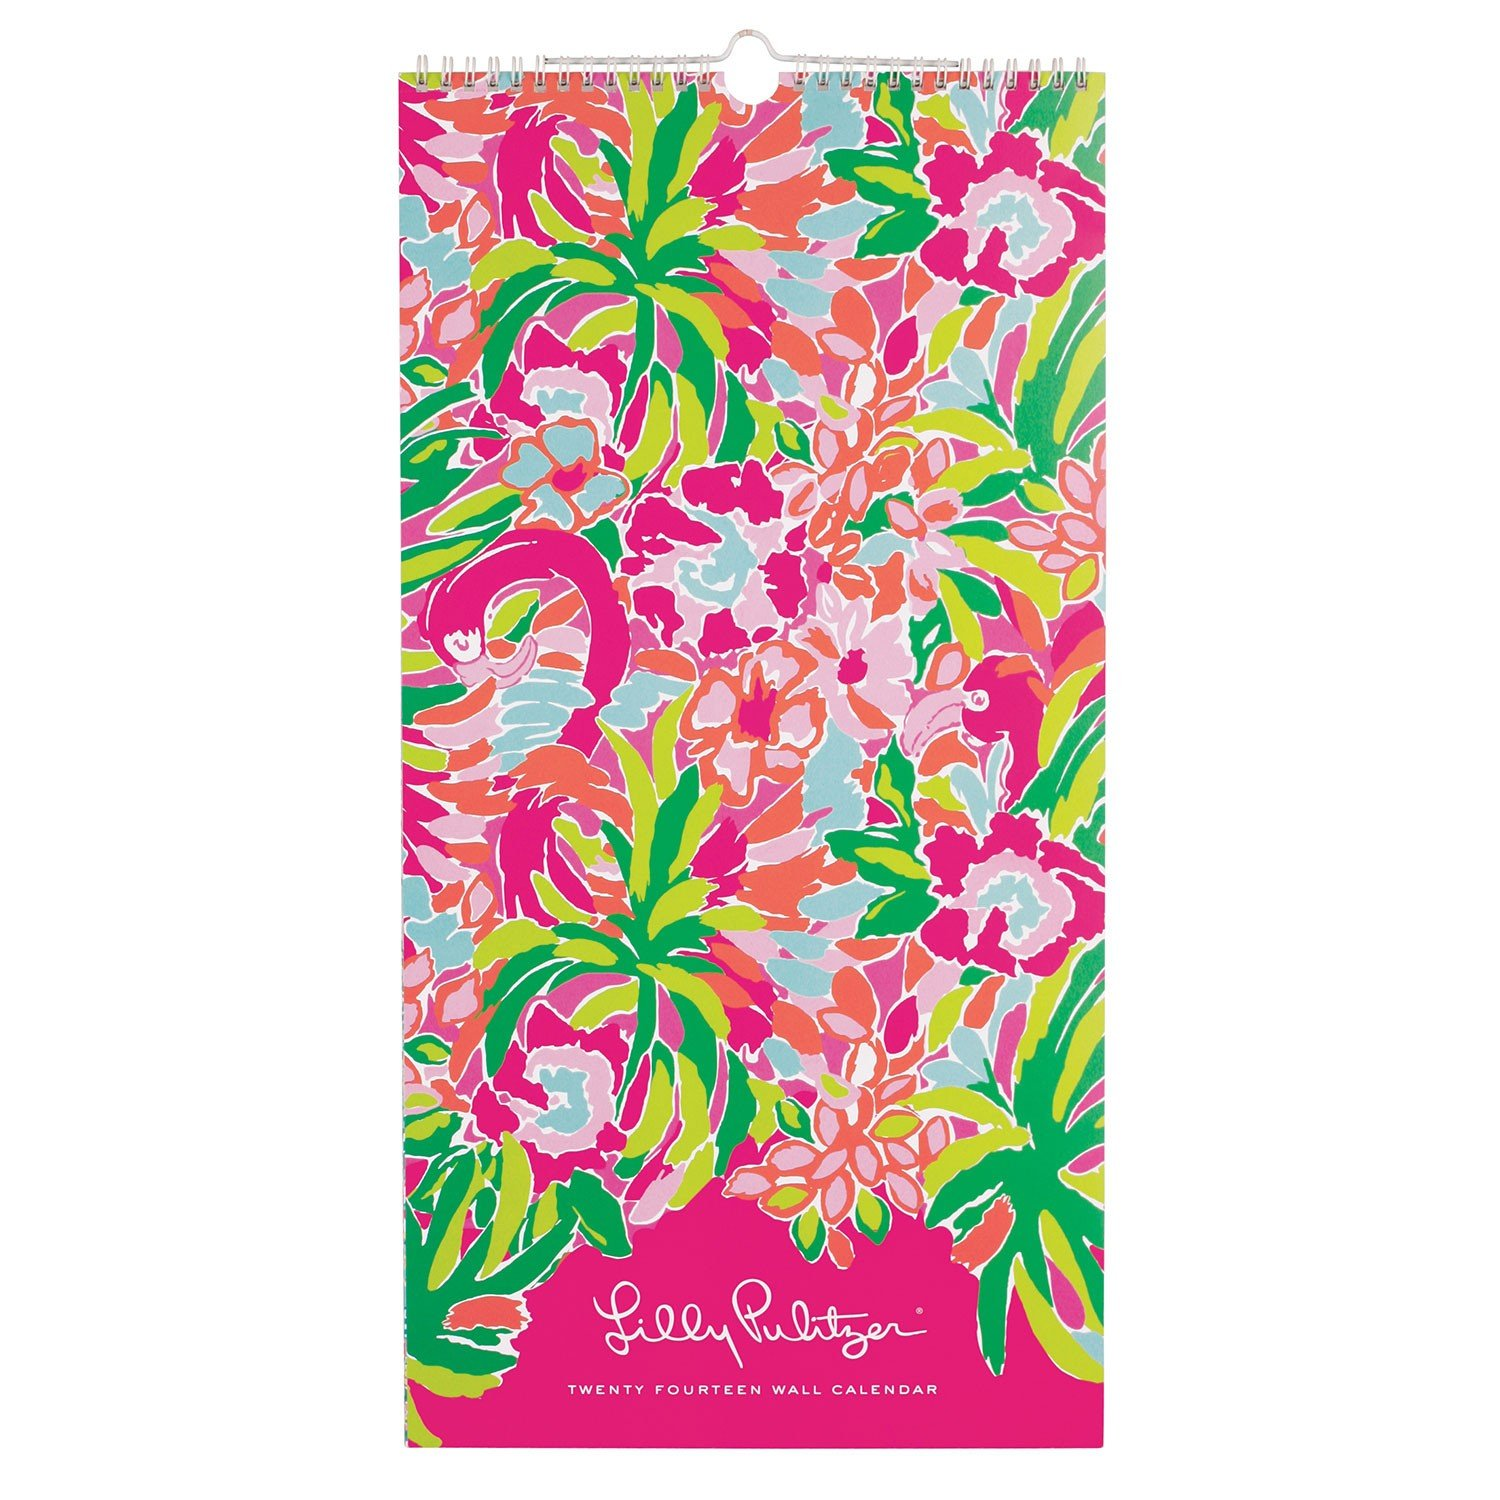 Lilly Pulitzer 2014 Wall Calendar from Dormify